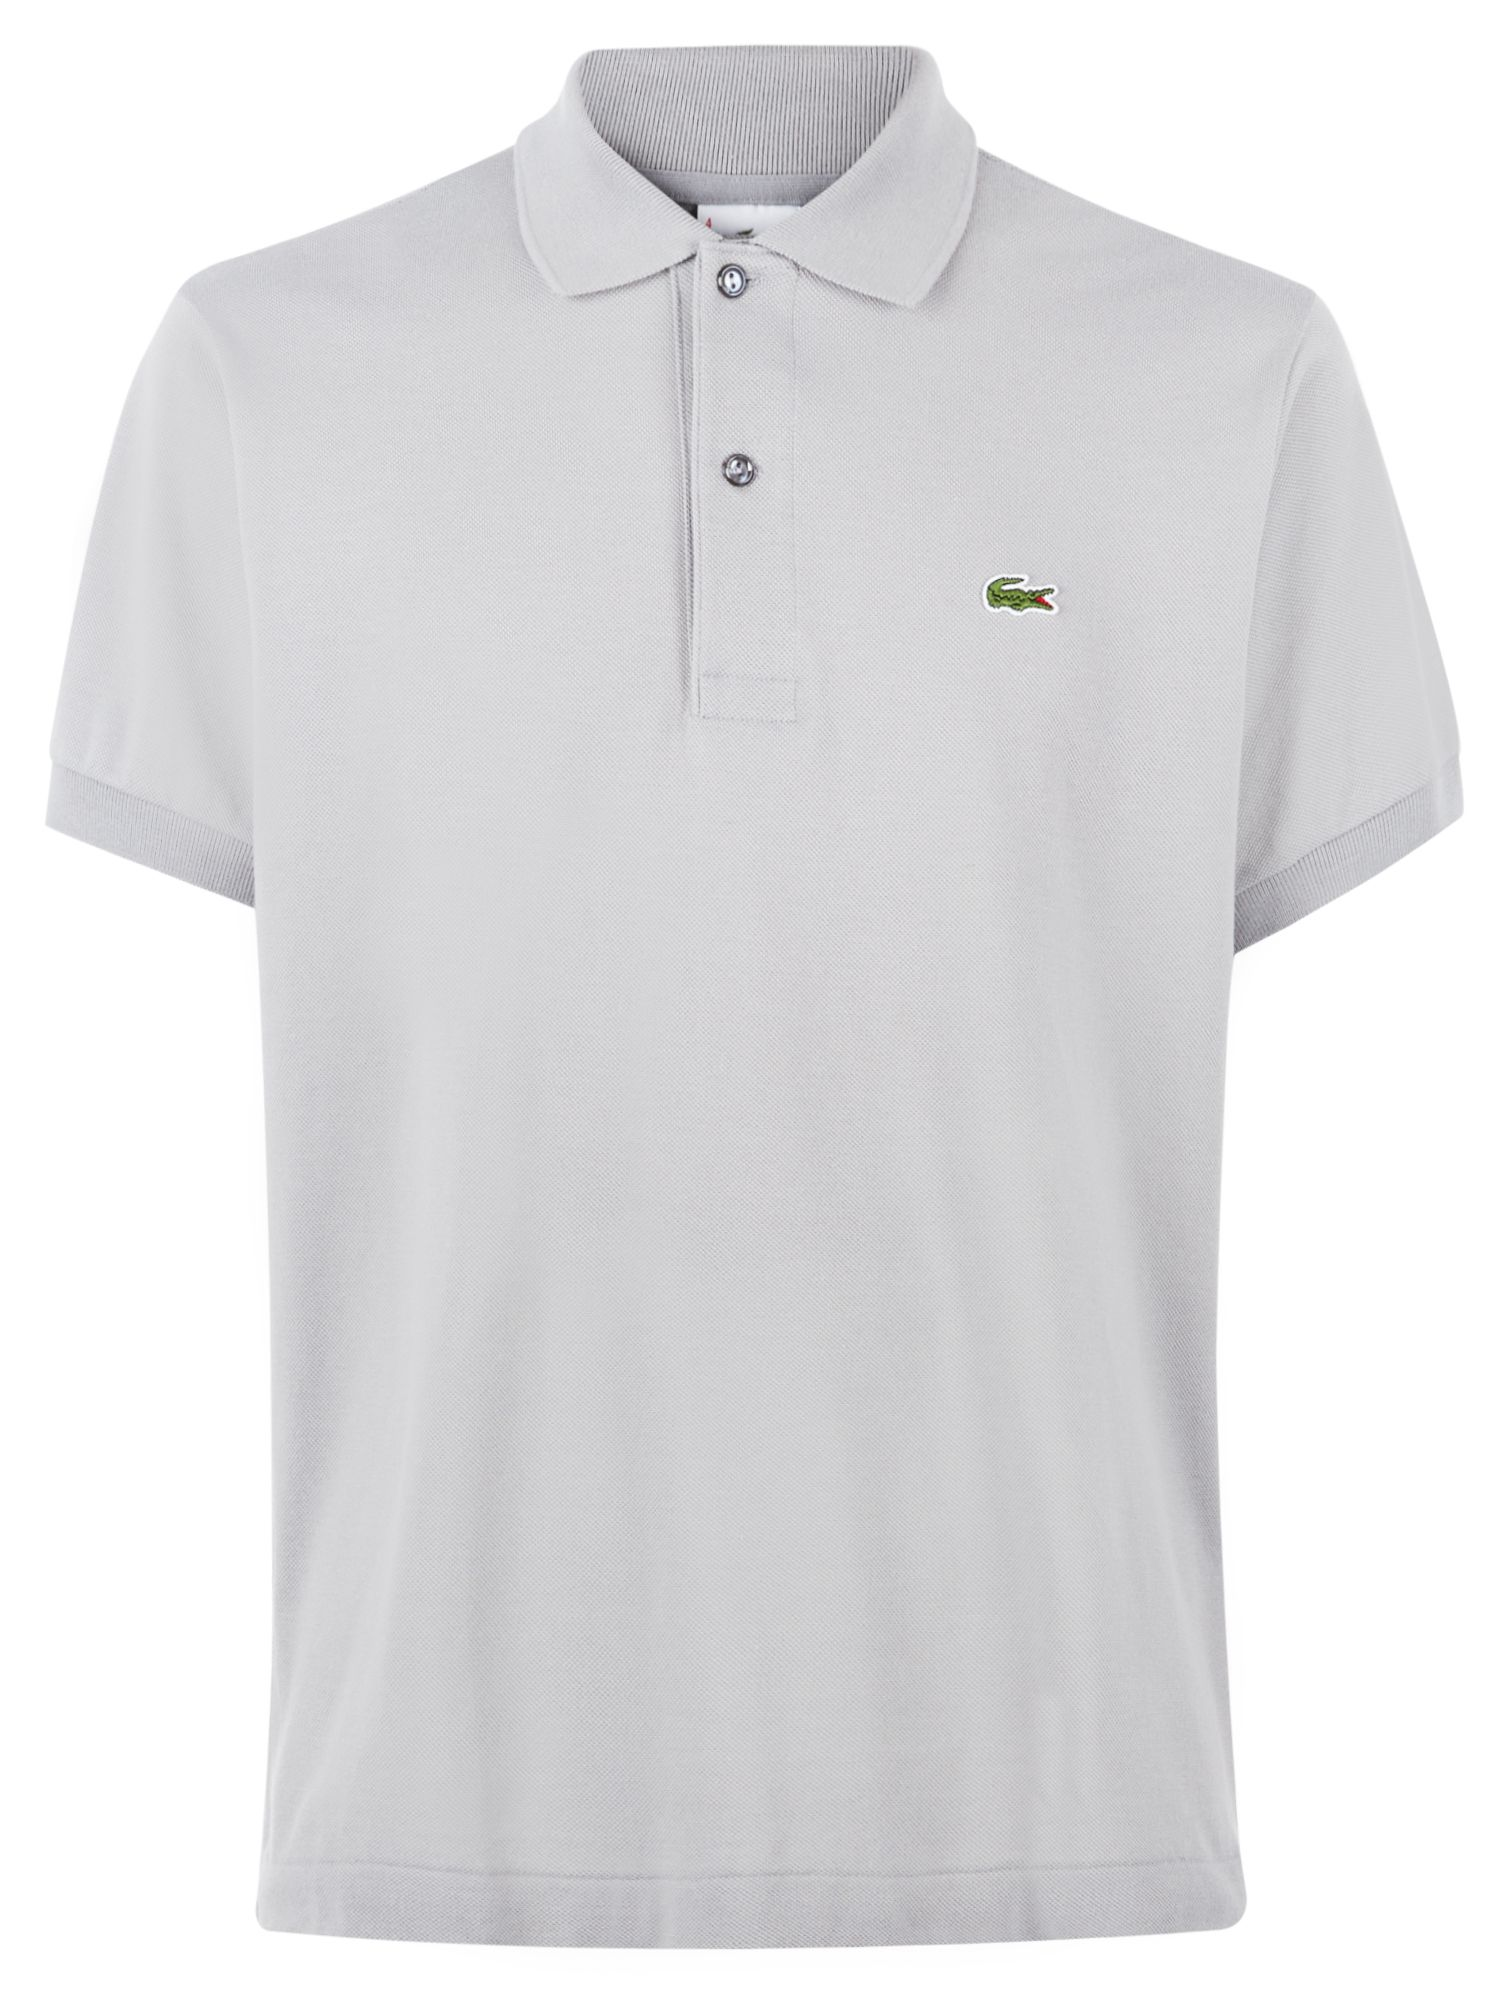 Men's Lacoste Plain l.12.12 original polo, Mineral